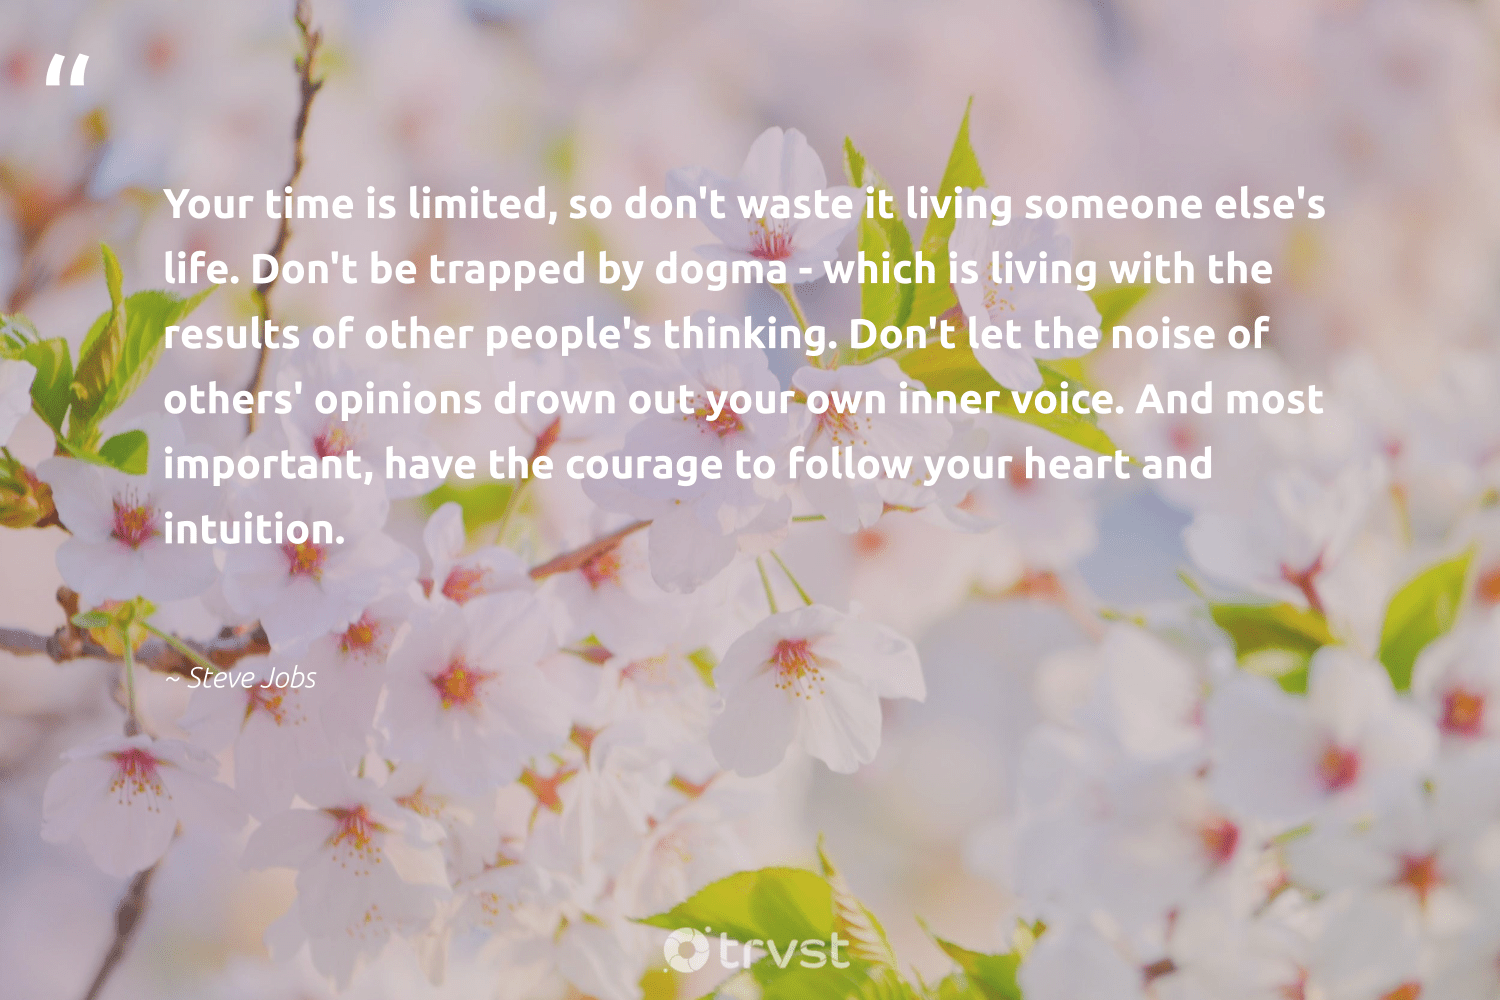 """Your time is limited, so don't waste it living someone else's life. Don't be trapped by dogma - which is living with the results of other people's thinking. Don't let the noise of others' opinions drown out your own inner voice. And most important, have the courage to follow your heart and intuition.""  - Steve Jobs #trvst #quotes #waste #results #begreat #socialimpact #health #planetearthfirst #nevergiveup #thinkgreen #mindset #dotherightthing"